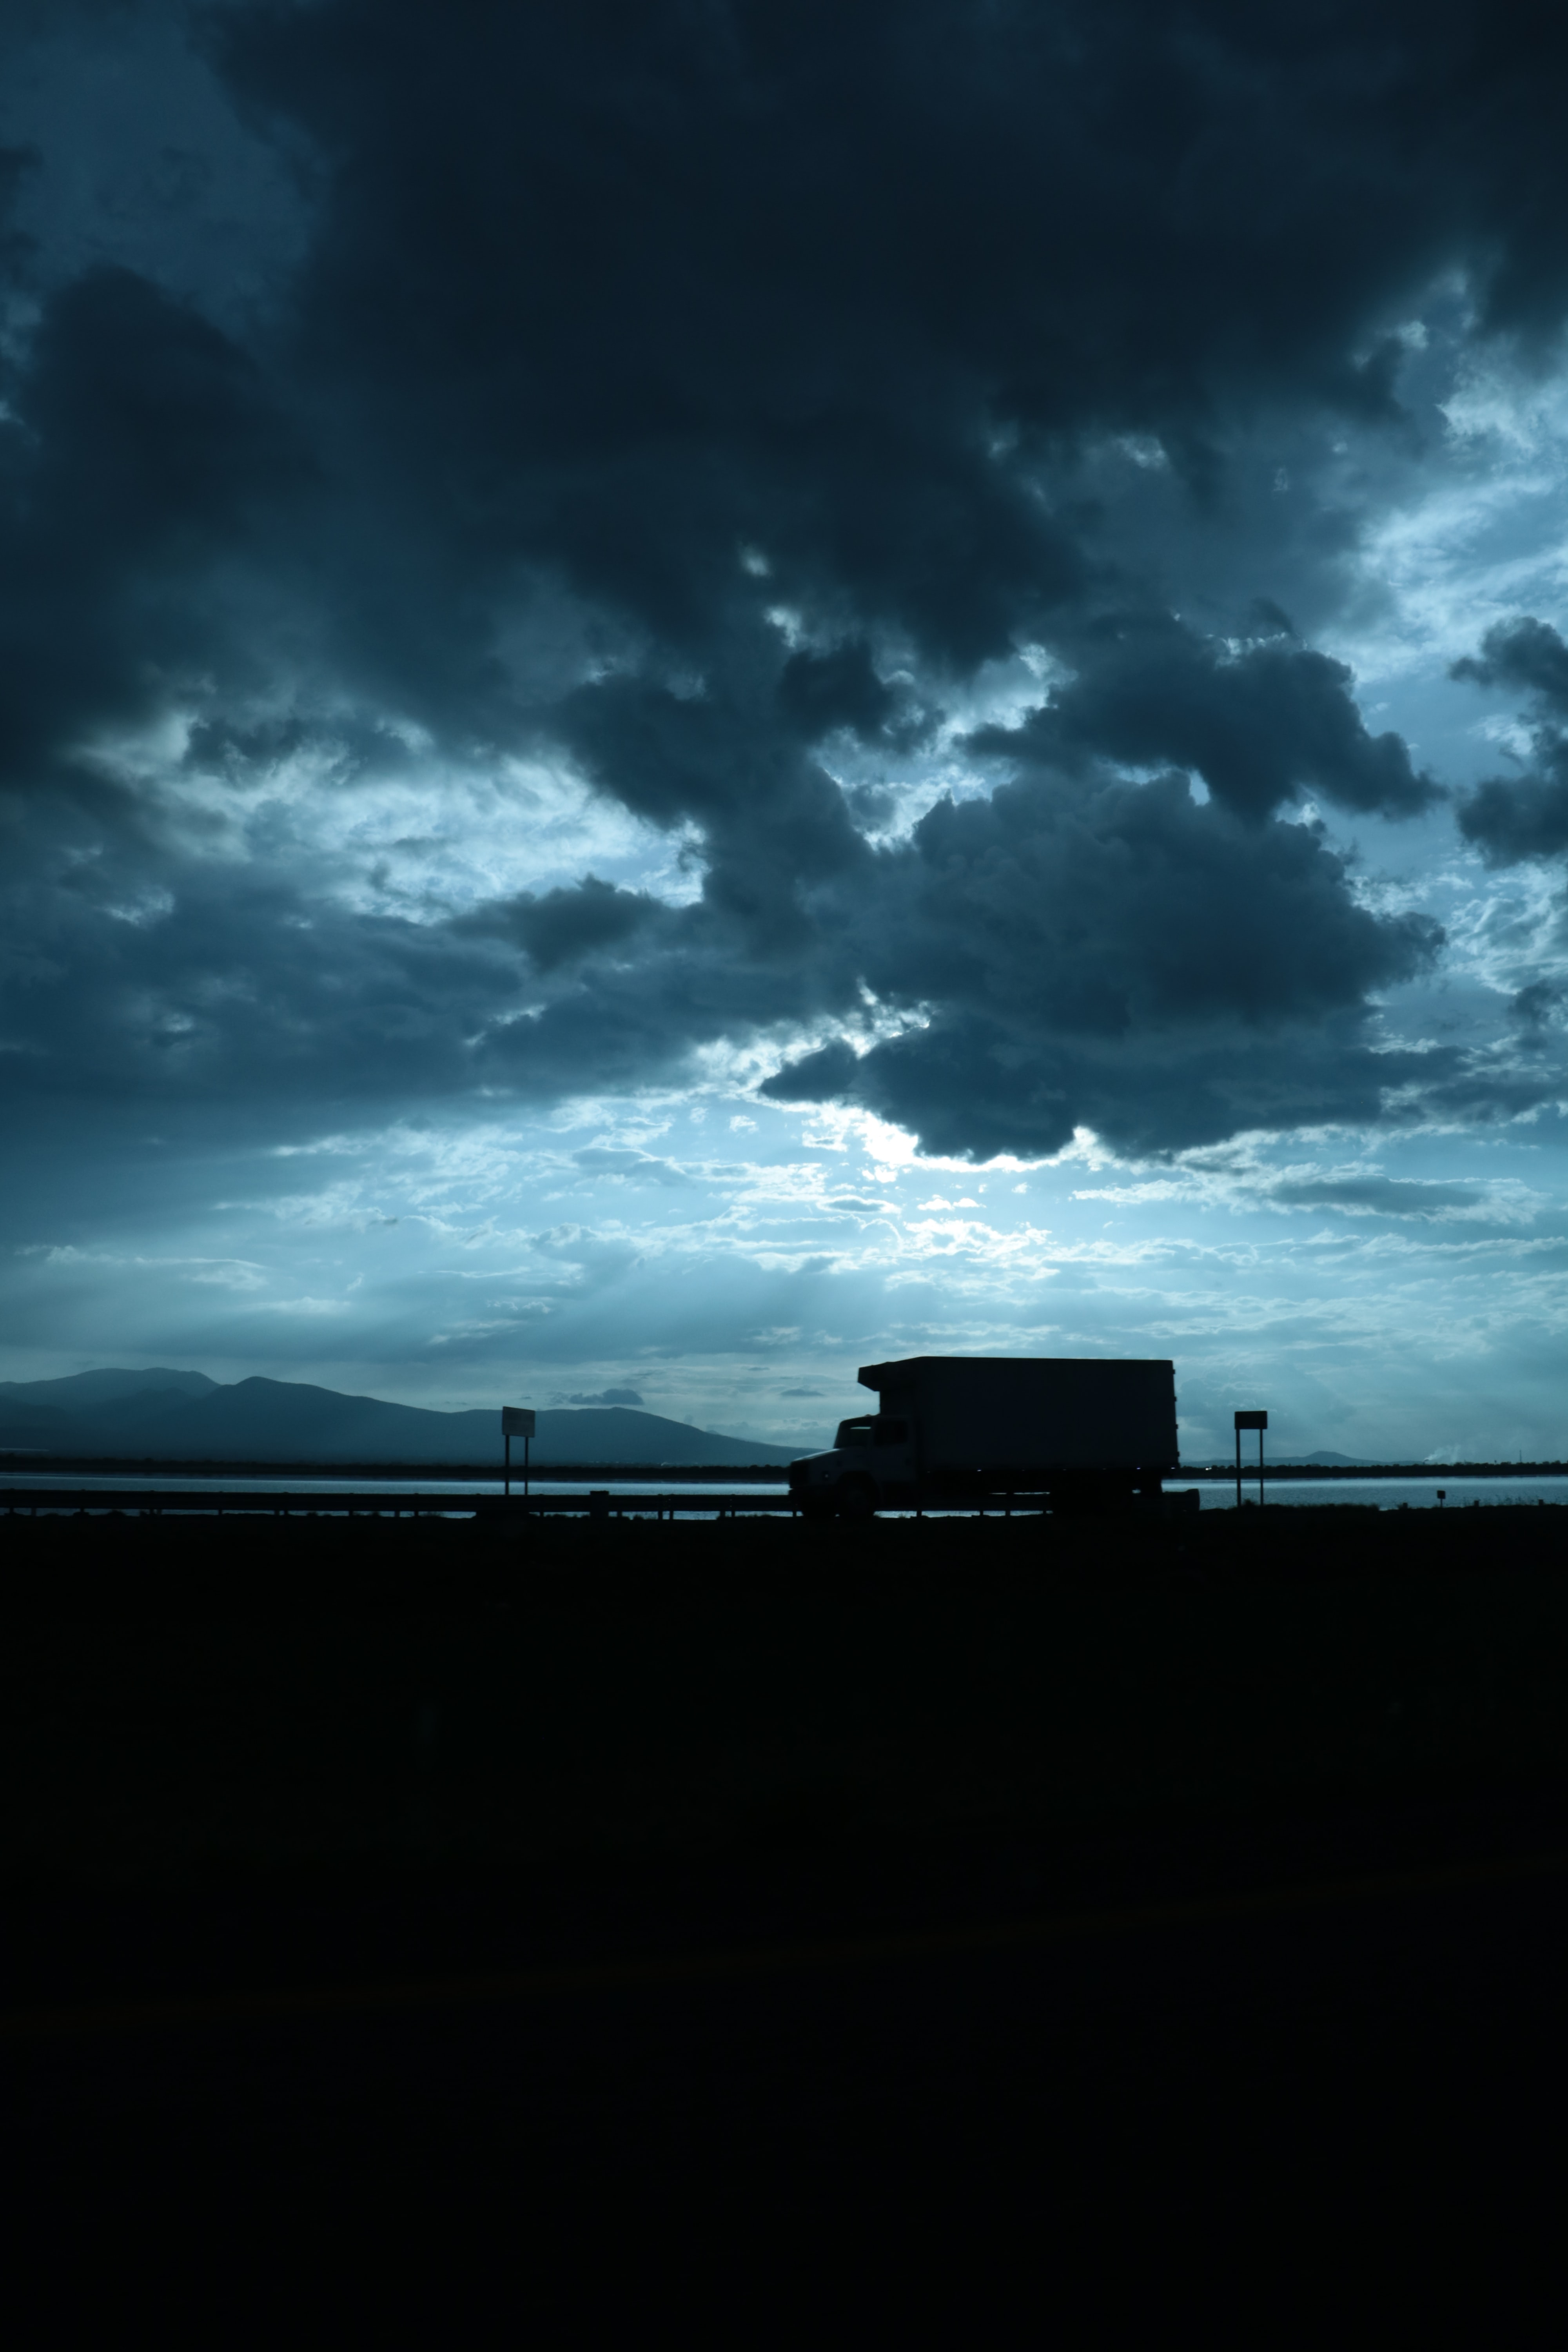 silhouette of car passing through road with cloudy sky